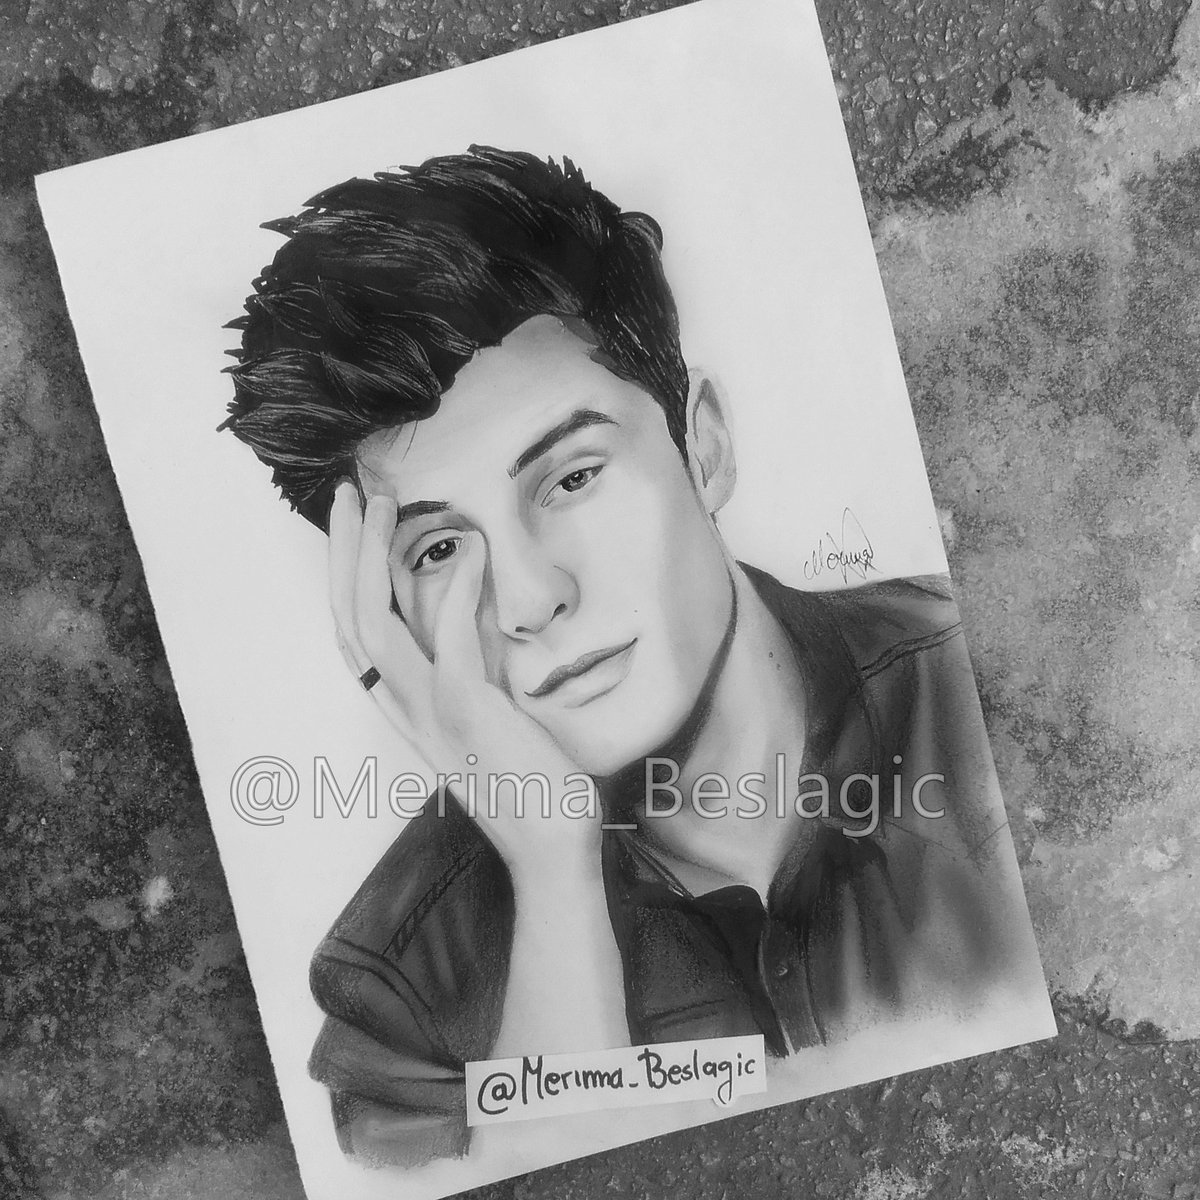 Shawnmendesdrawing Hashtag On Twitter